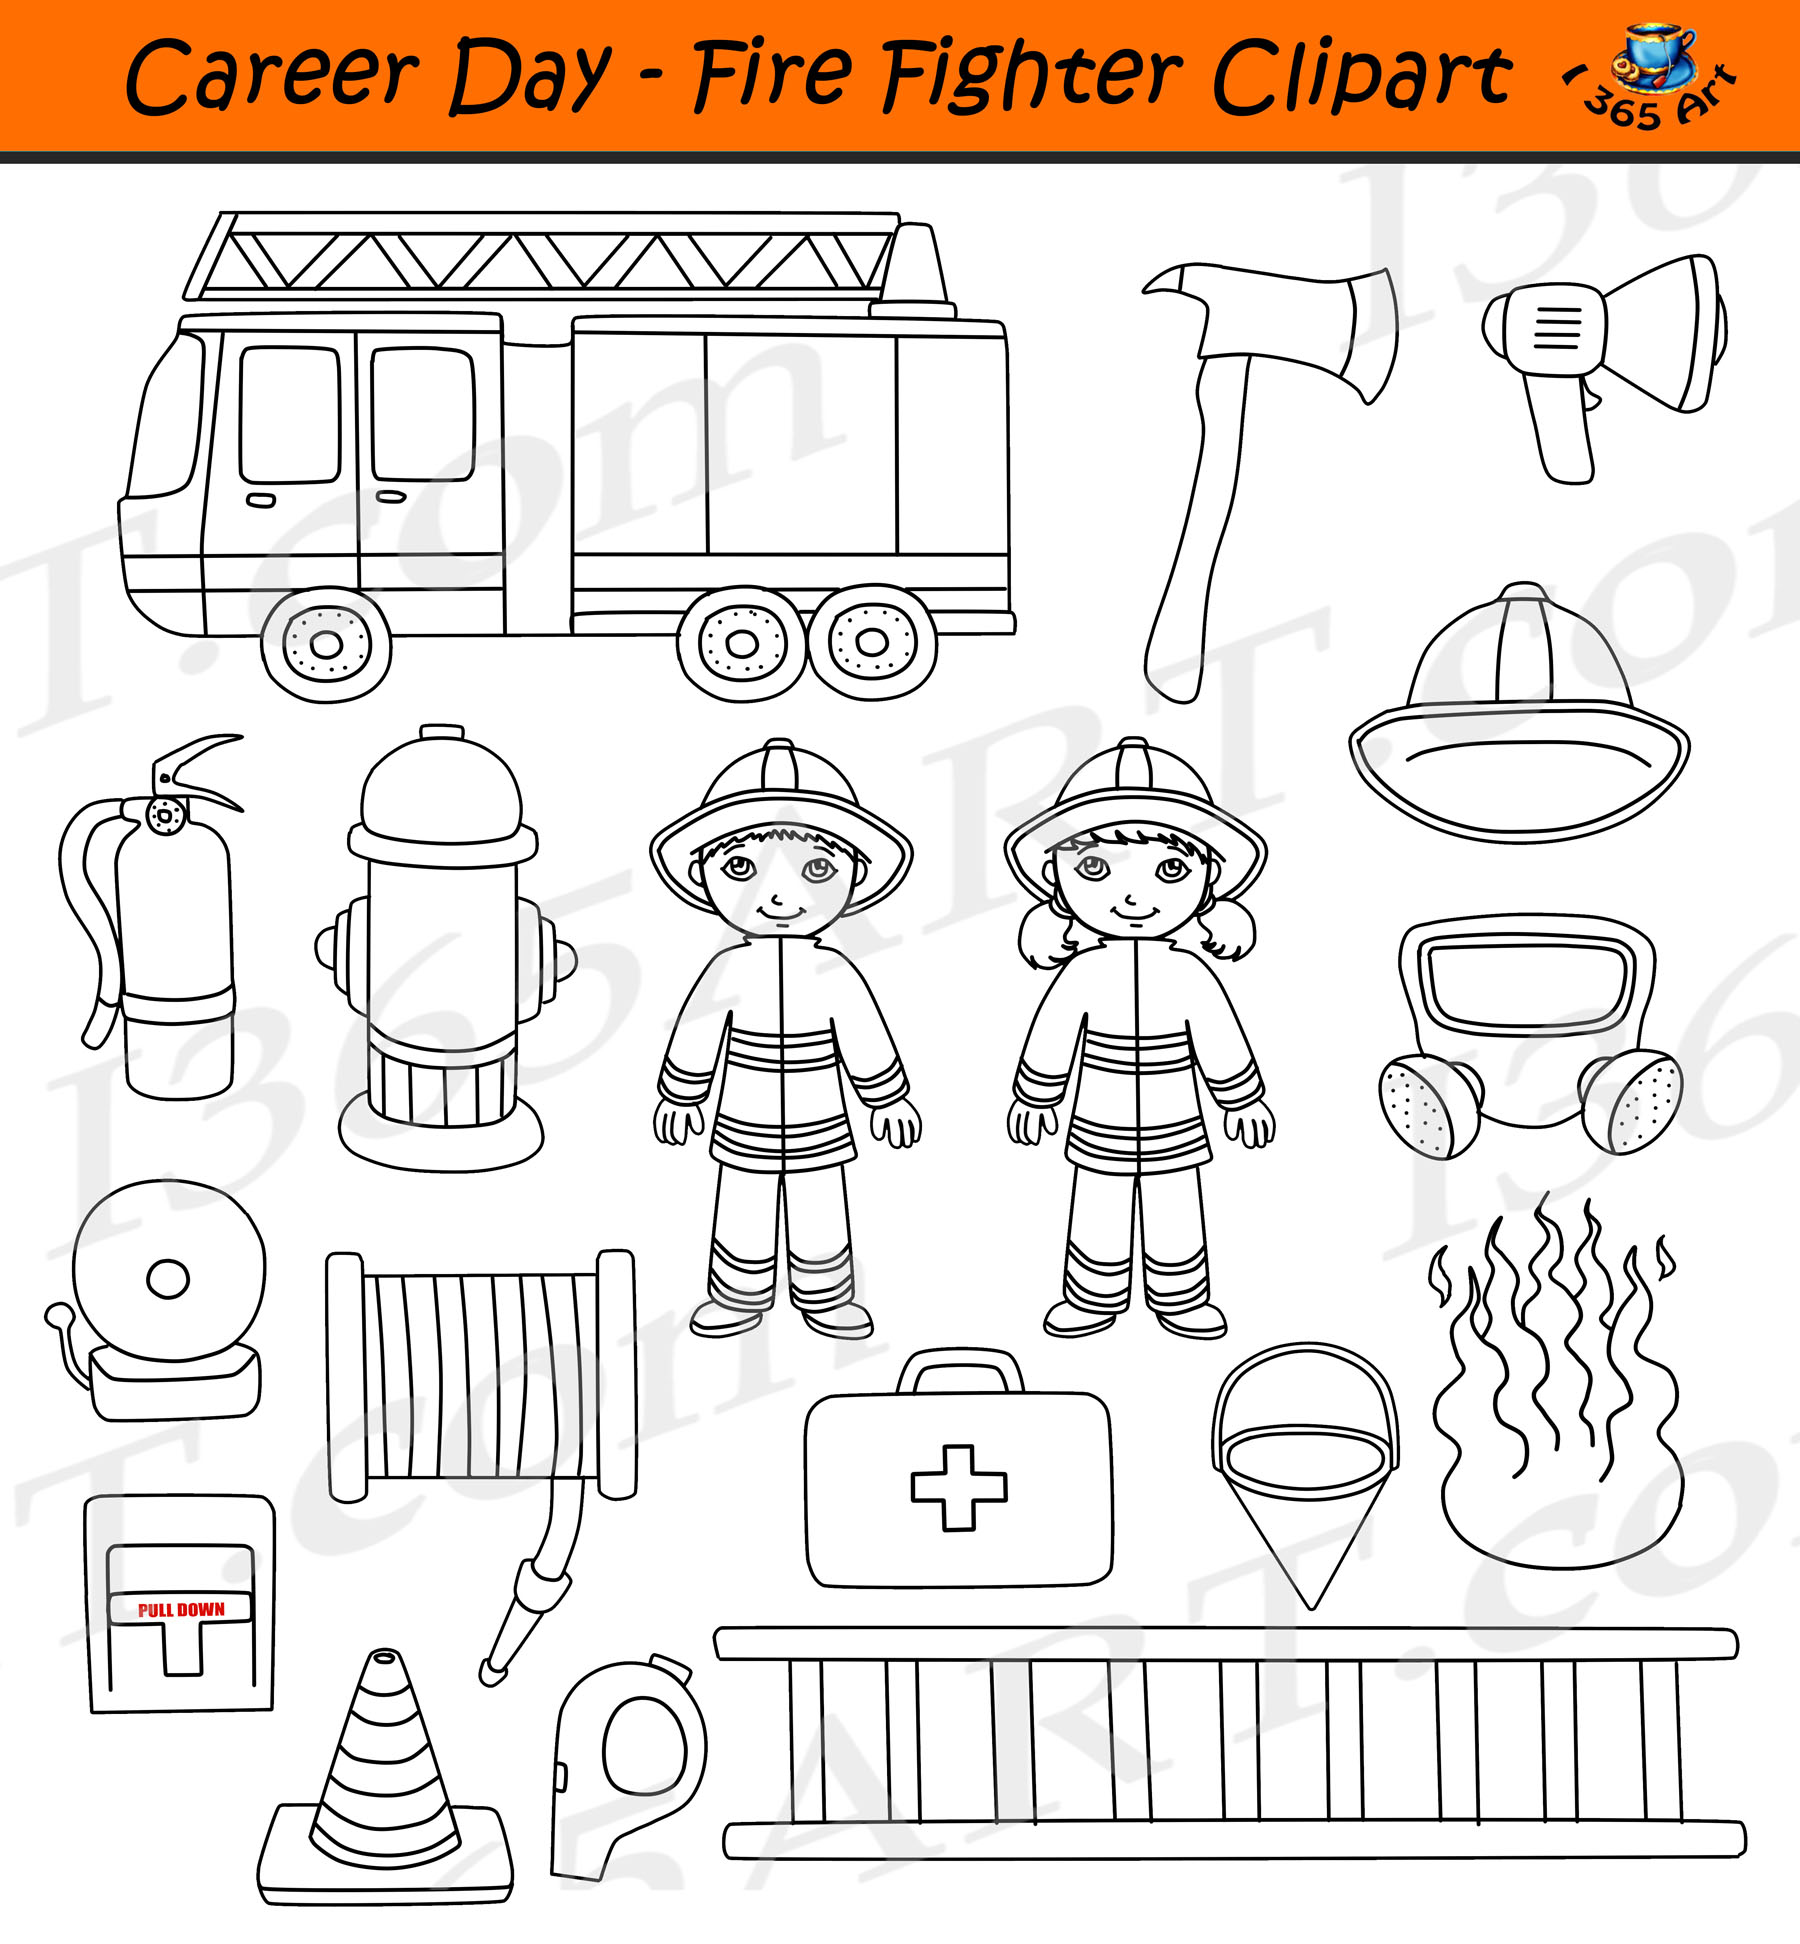 Fire Fighter Clipart Career Day Commercial Graphics Clipart For